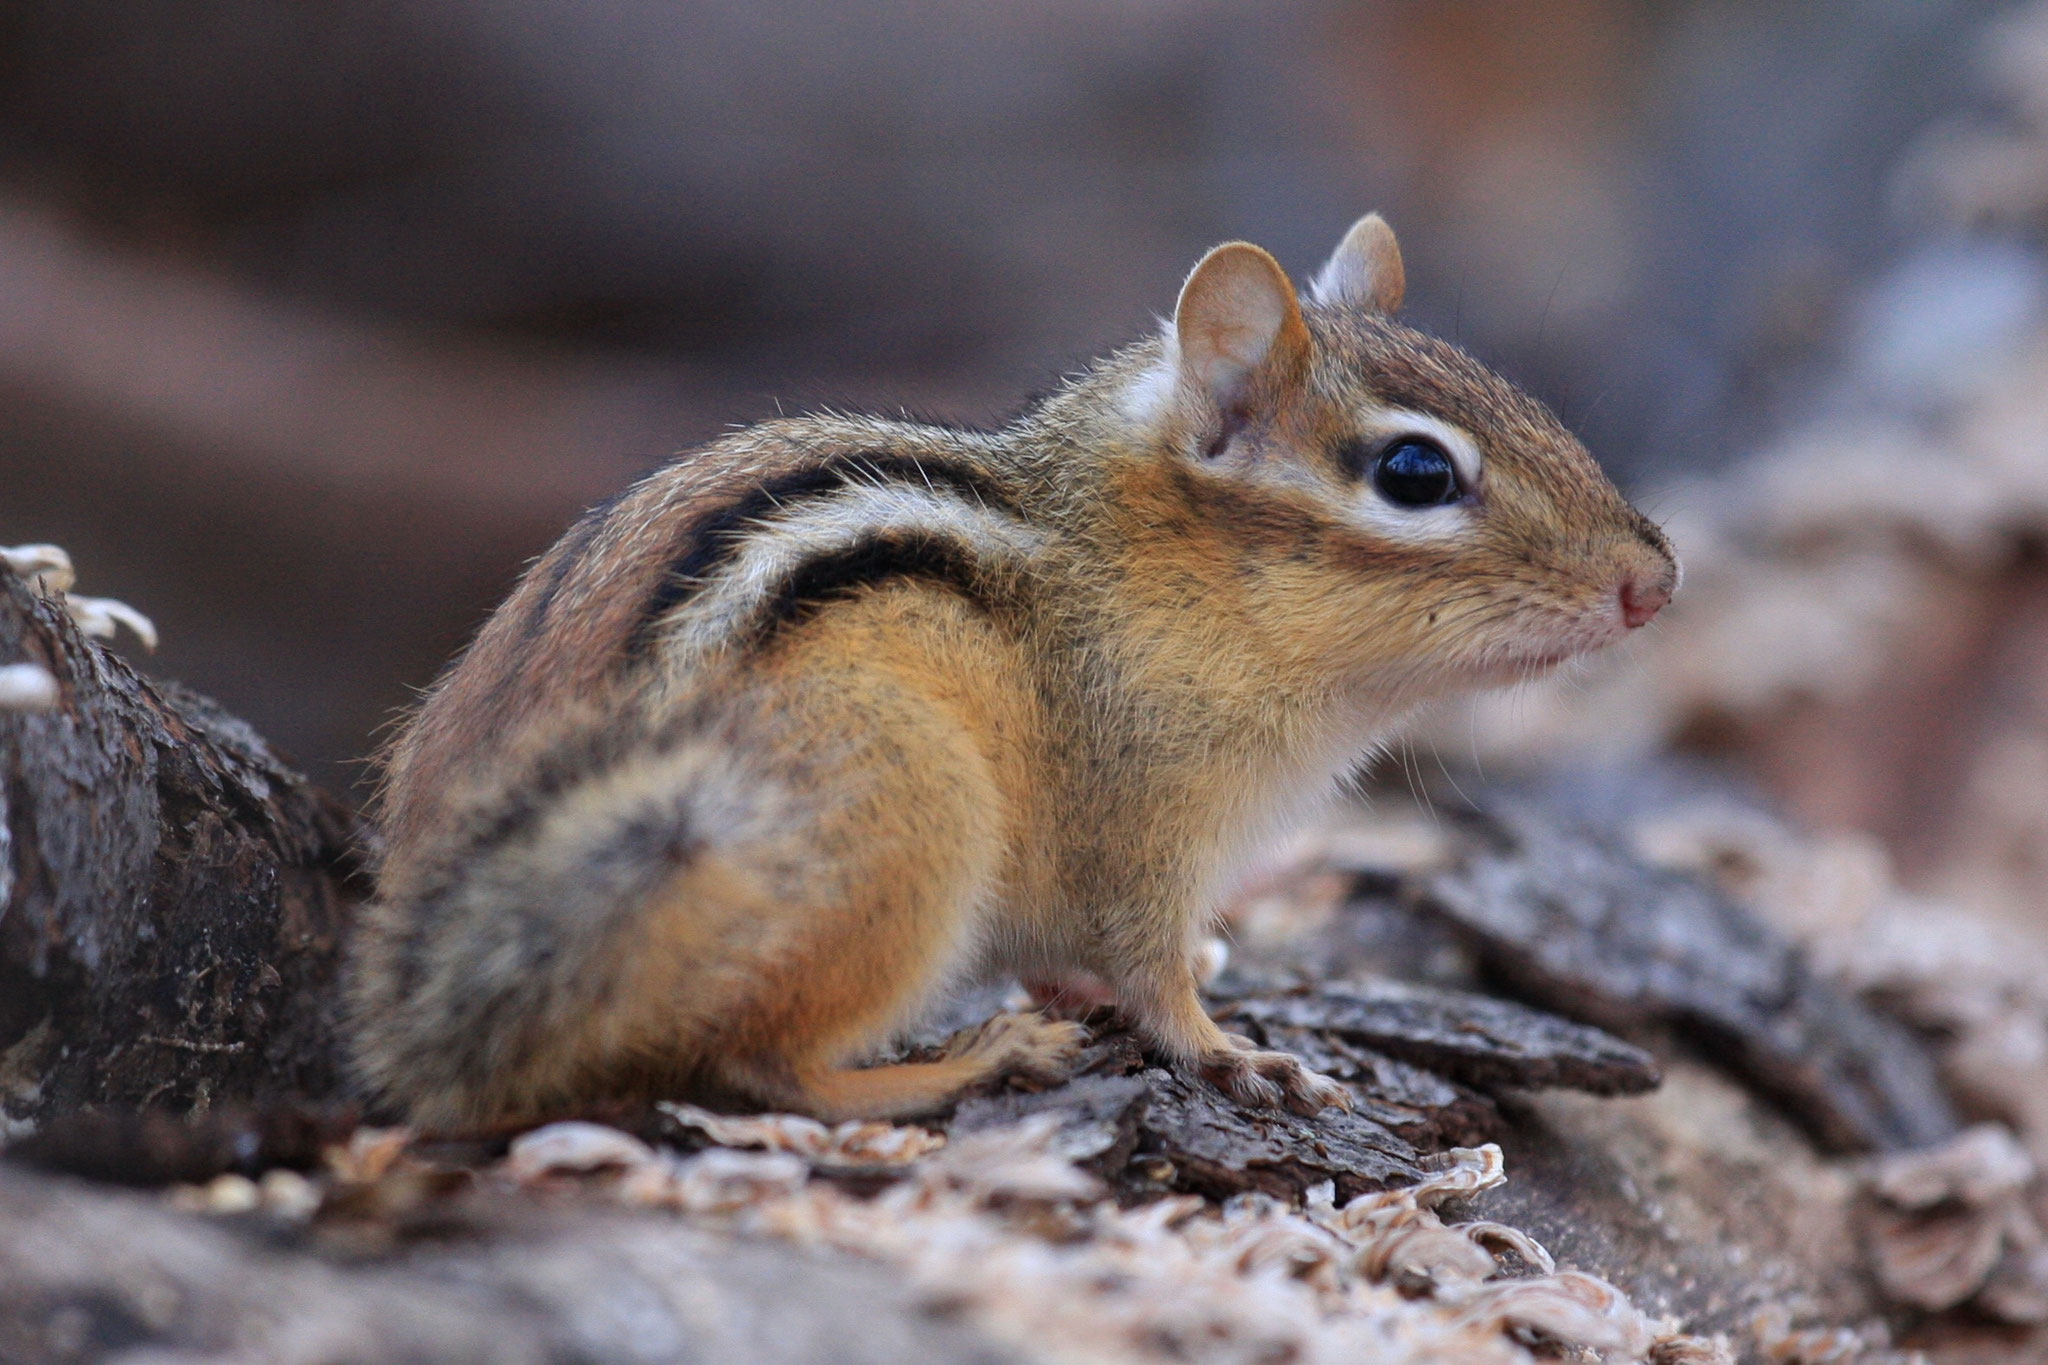 Eastern chipmunk (Tamias striatus) a widely distributed, fat-storing hibernating squirrel.